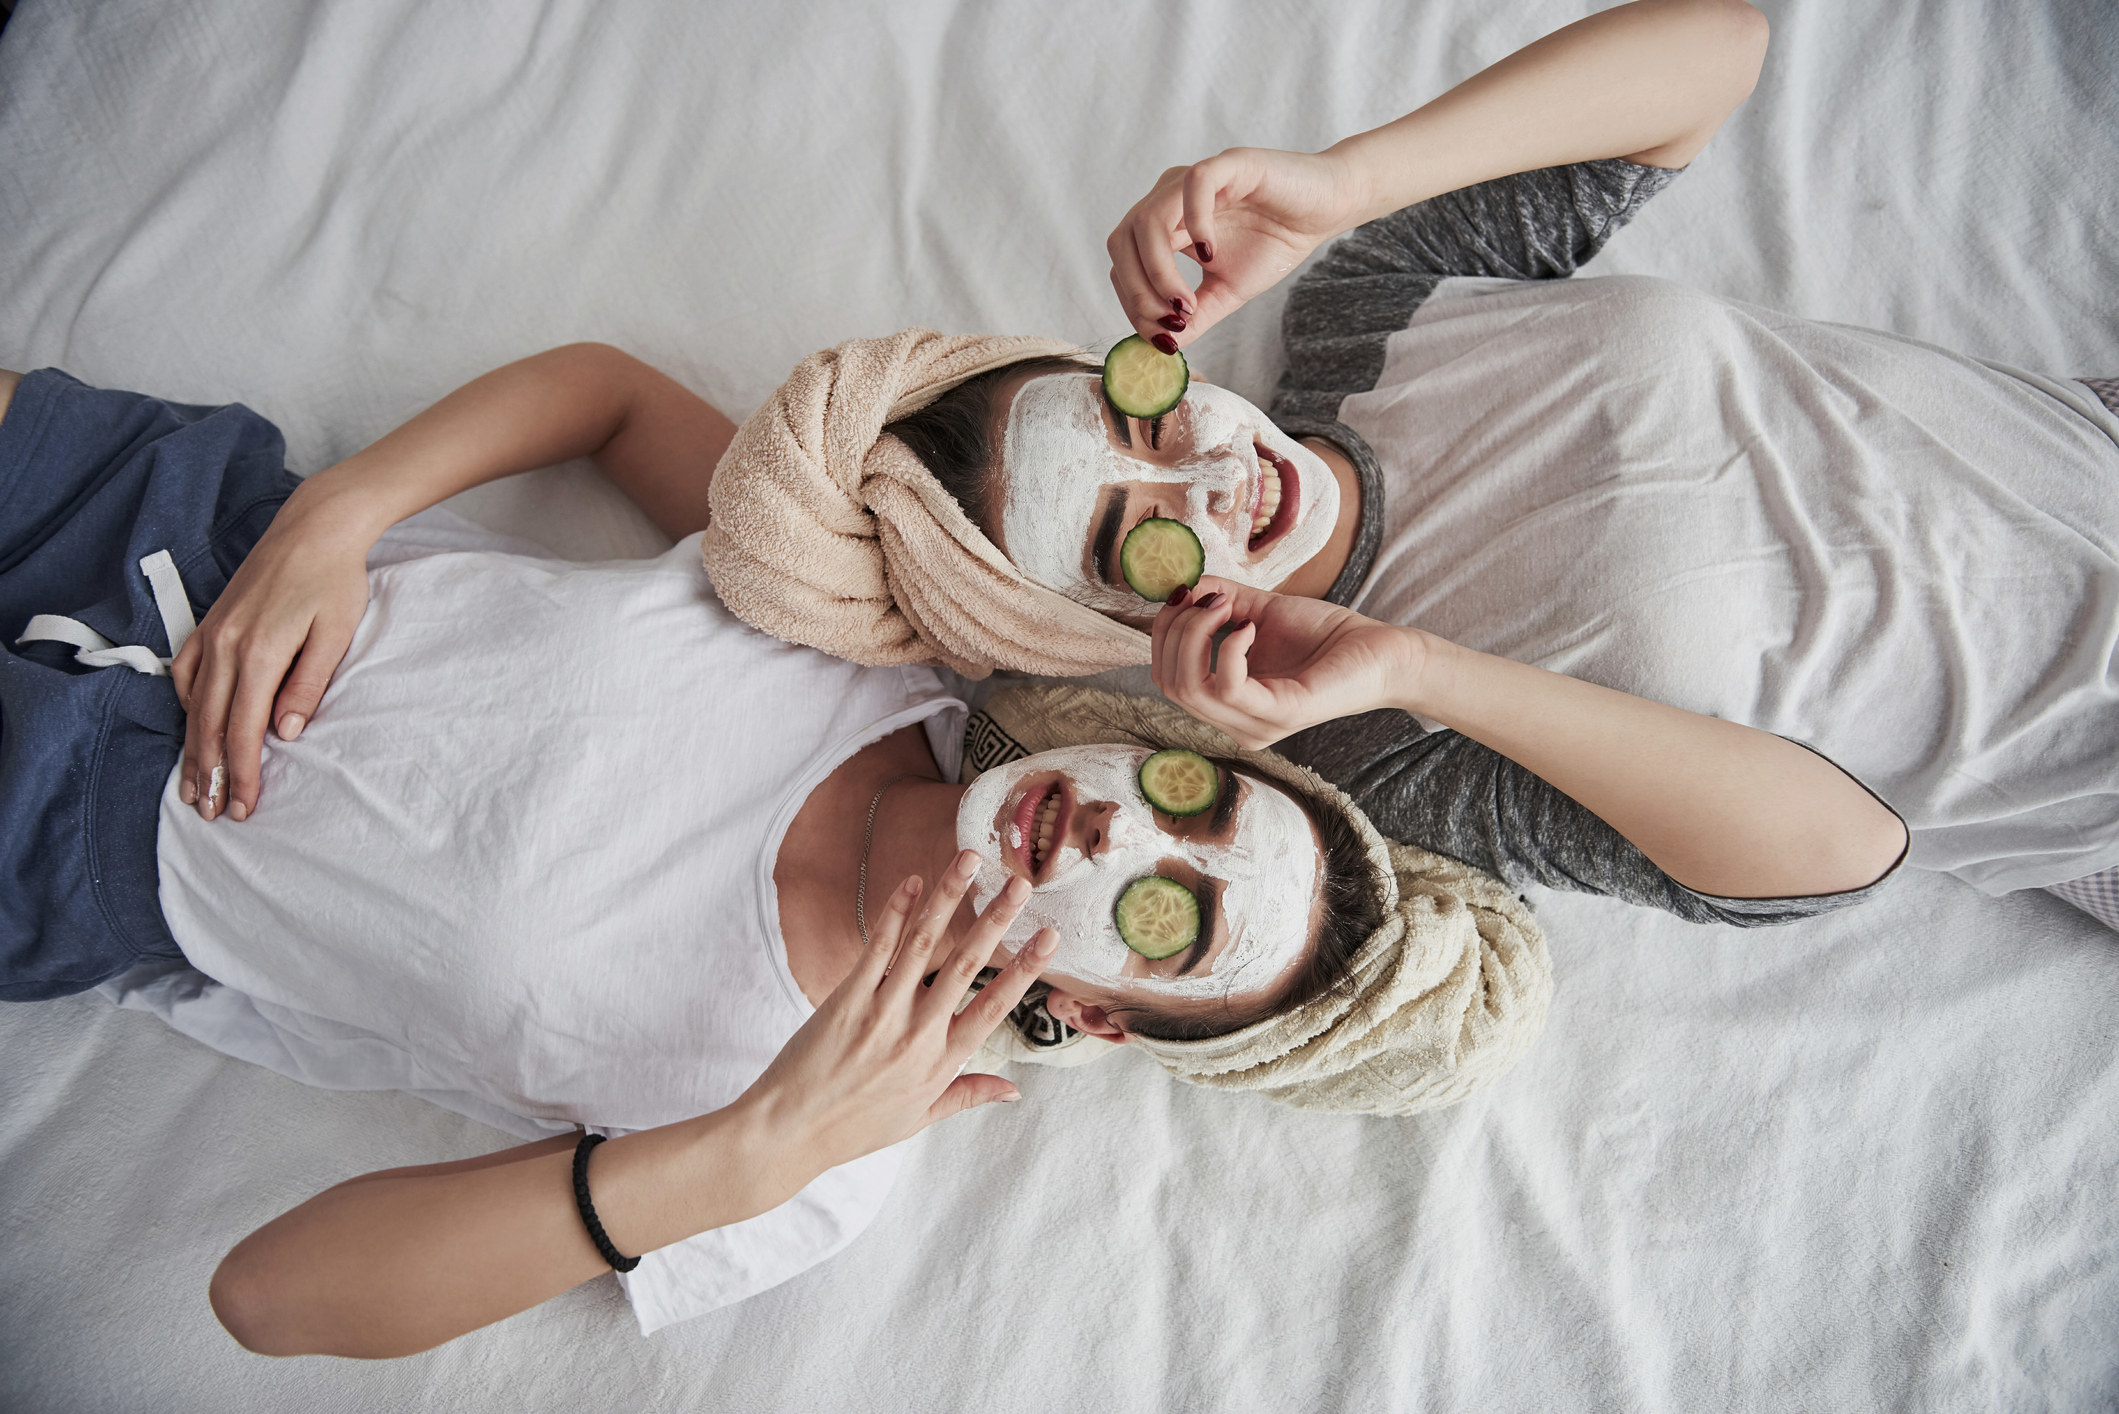 Photo of two women doing their skincare routine with a spa treatment, they both have a mask on with cucumbers on their eyes, one woman is smiling while the other is resting with her mask on, they are both wearing casual clothing while on a white bed